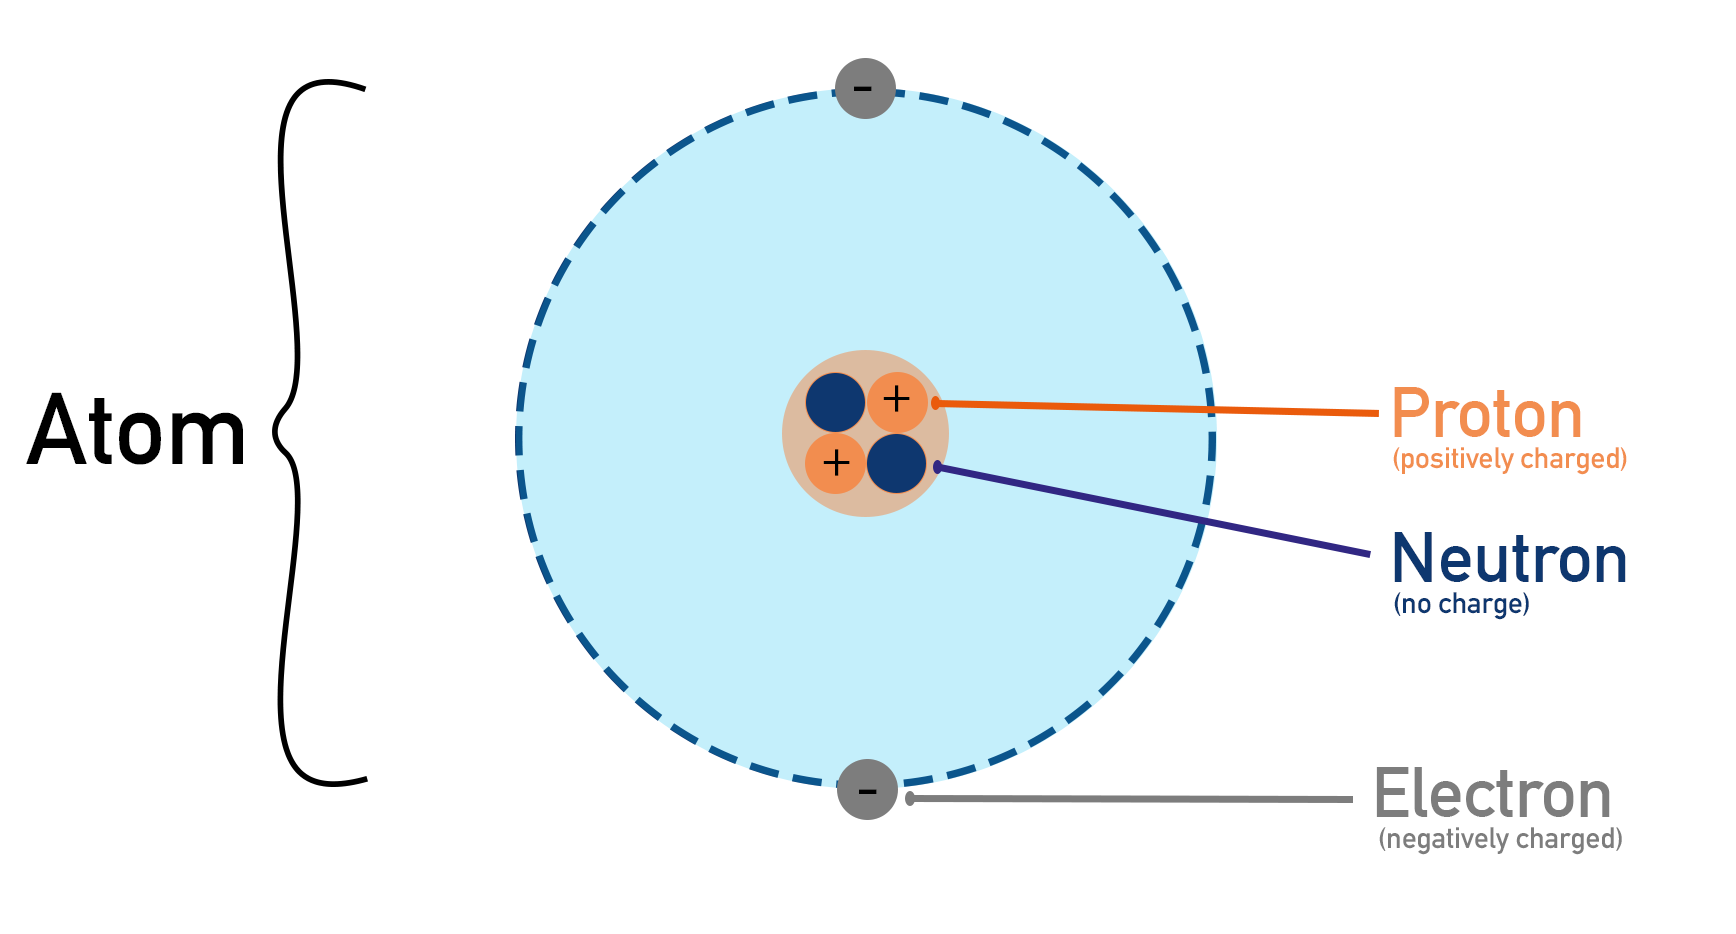 atom with positively charged protons and neutrons in a nucleus